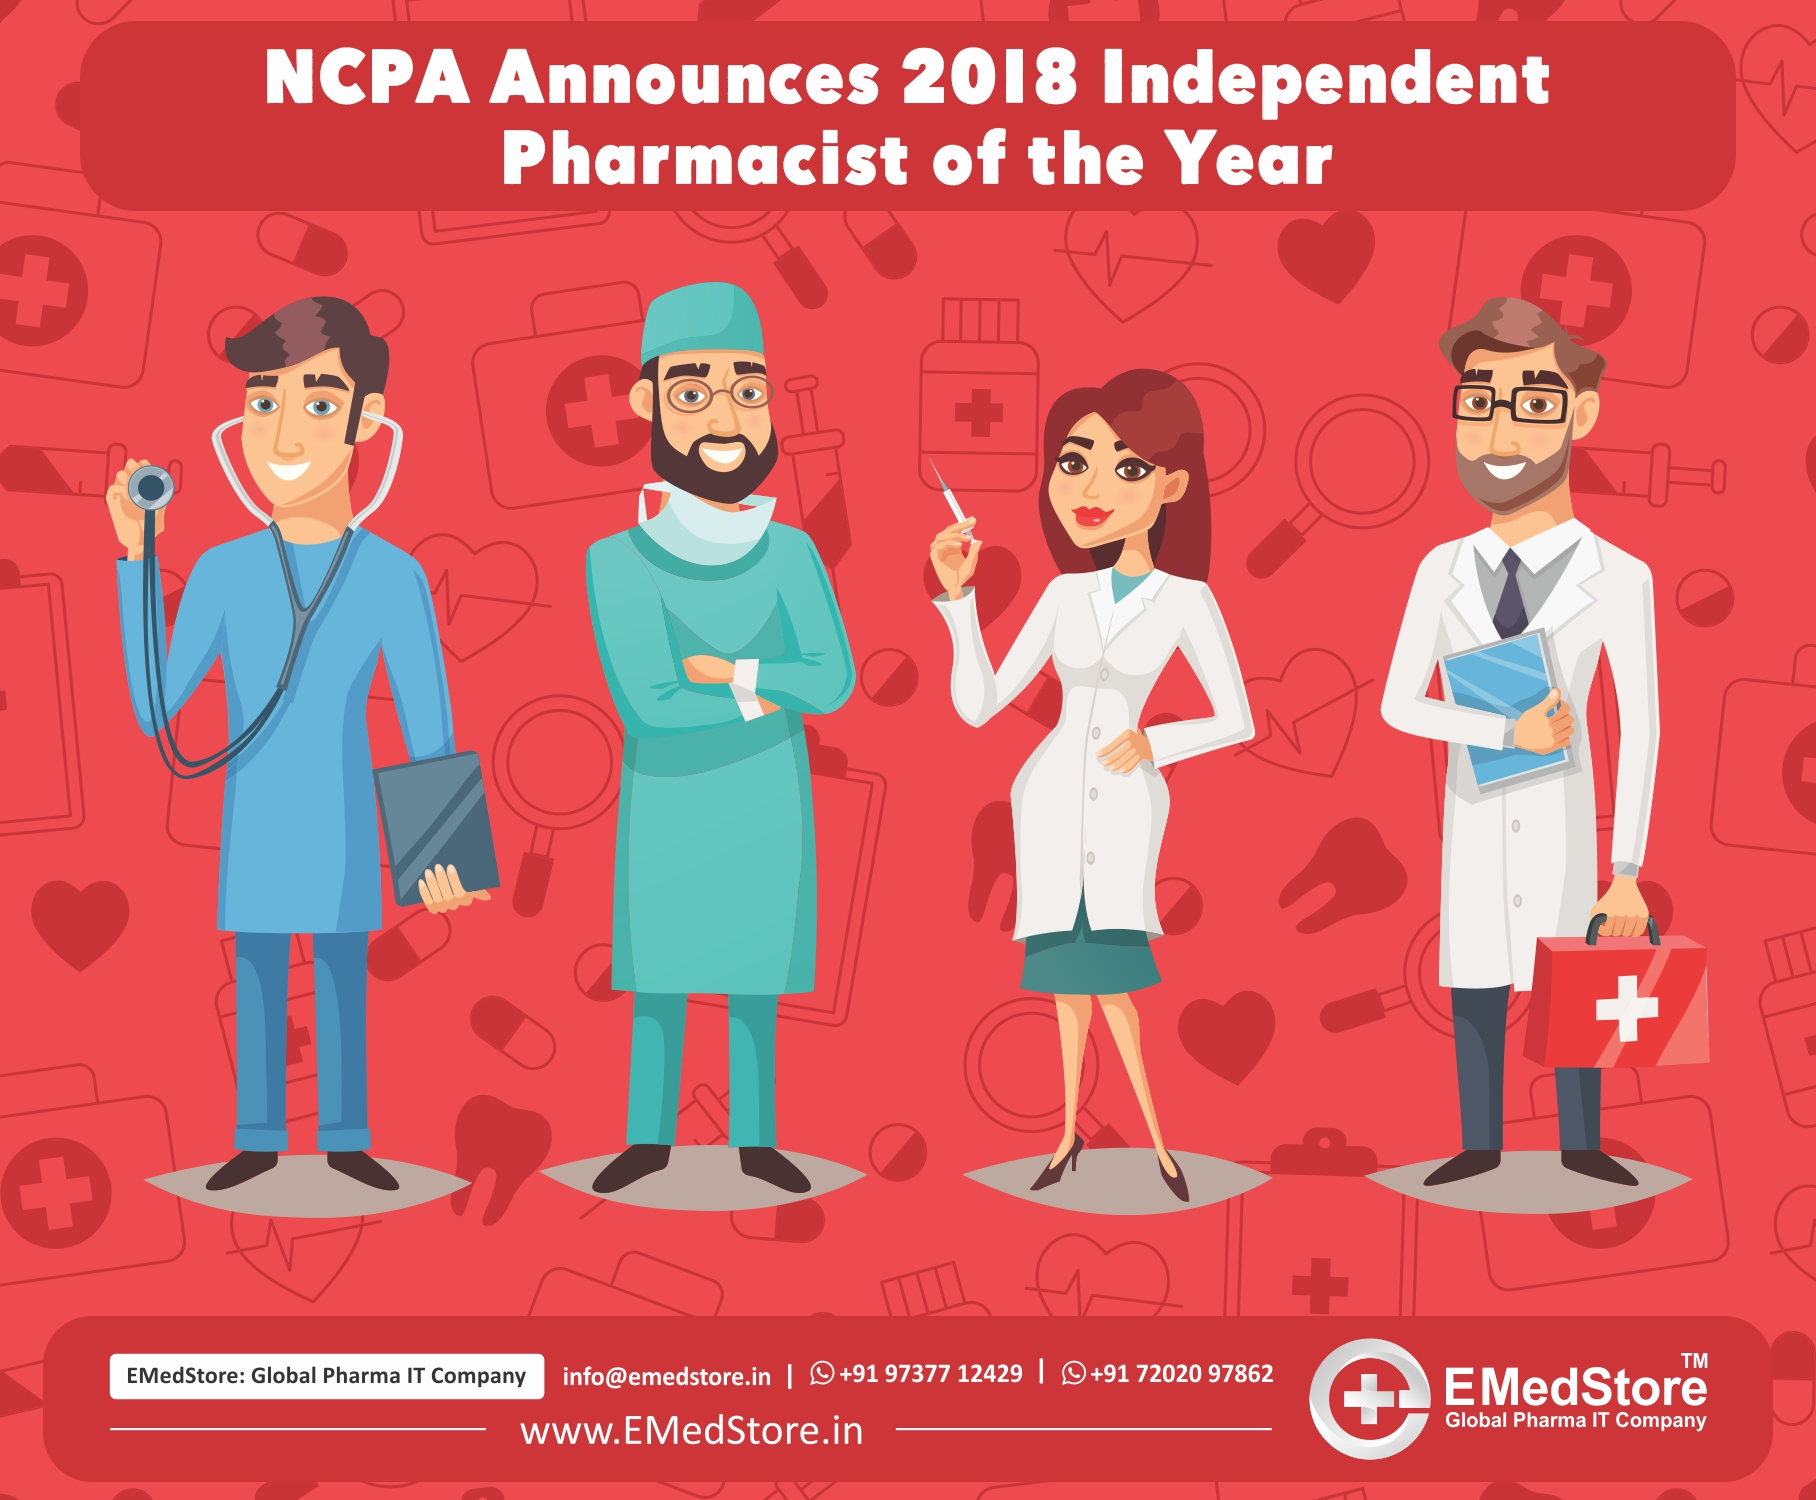 NCPA Announces 2018 Independent Pharmacist of the Year